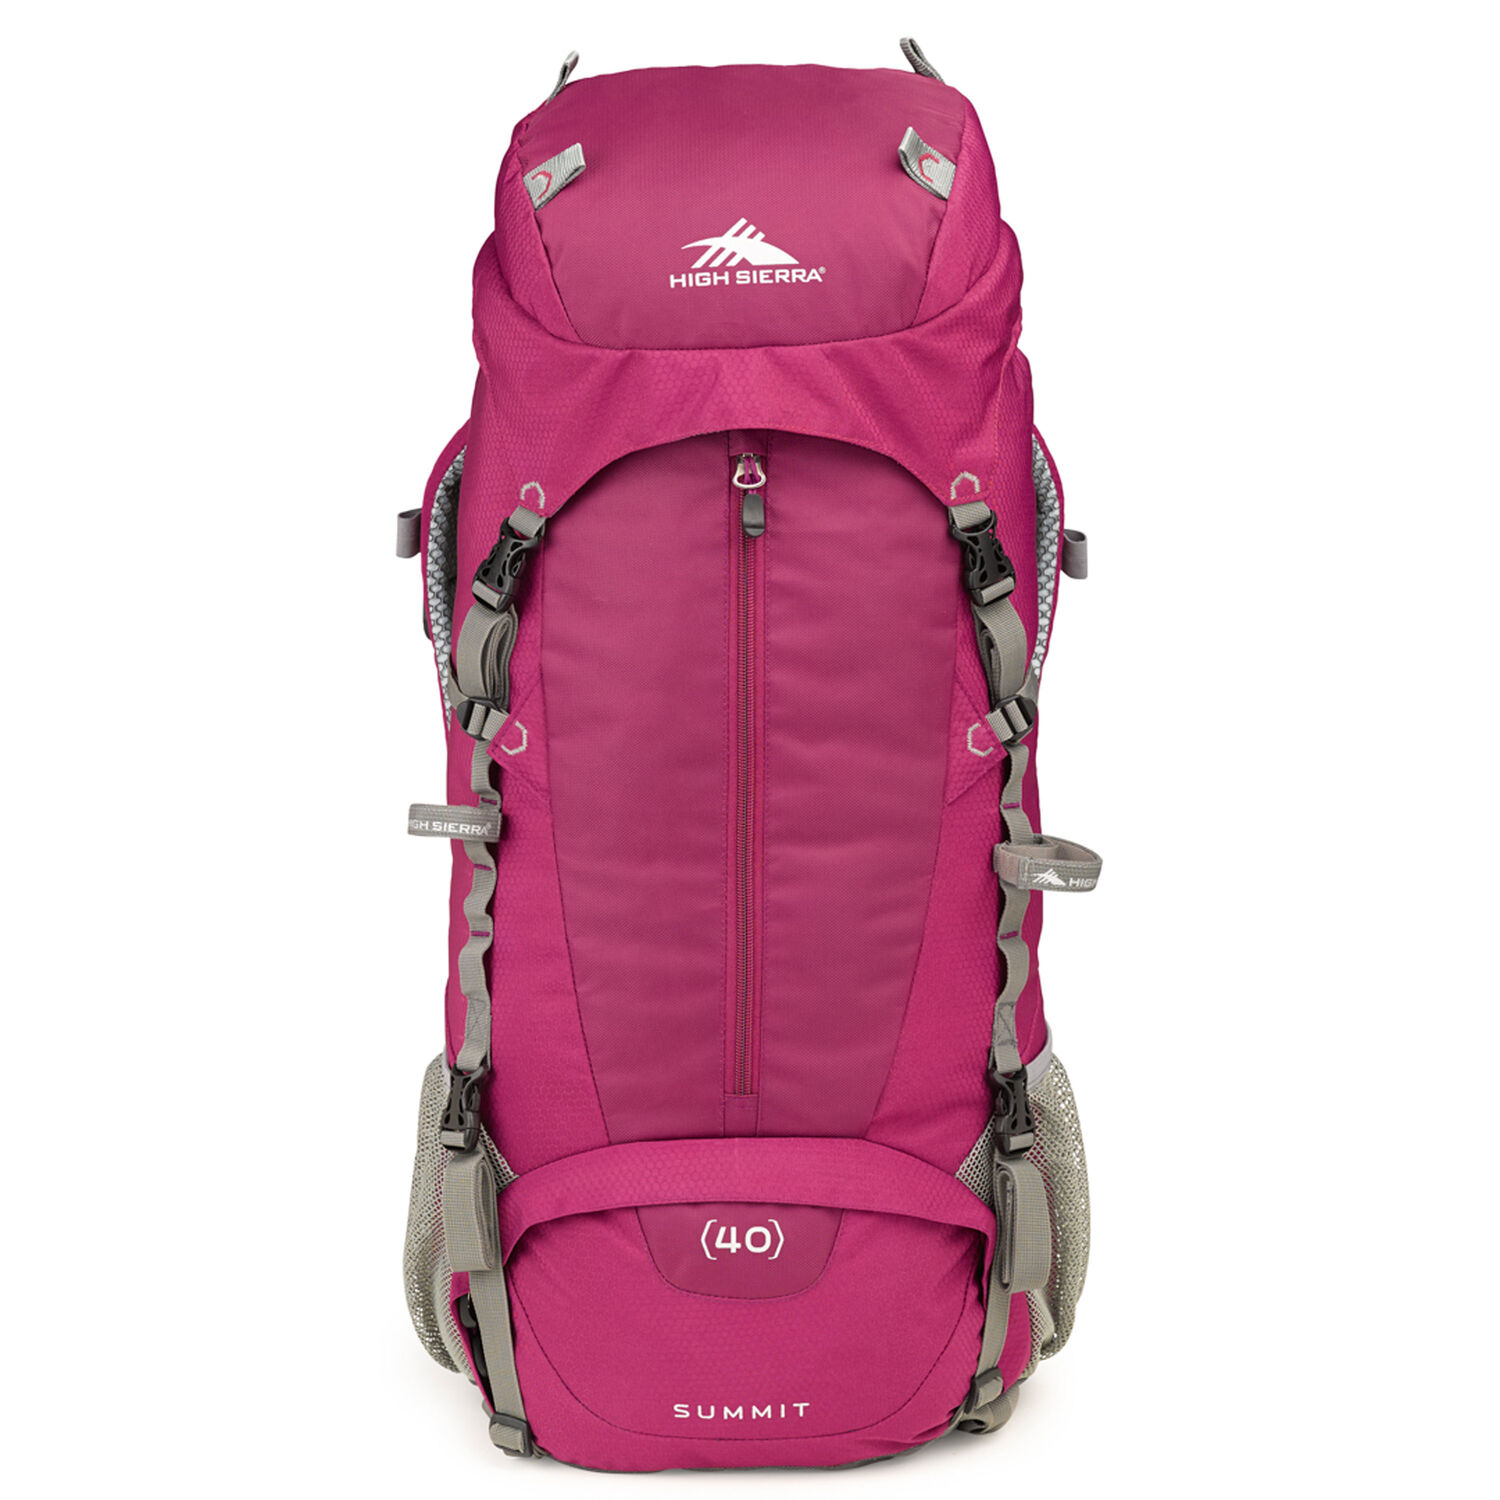 6cad4348c1b High Sierra Classic 2 Series Summit 40W Frame Pack in the color  Boysenberry Ash.